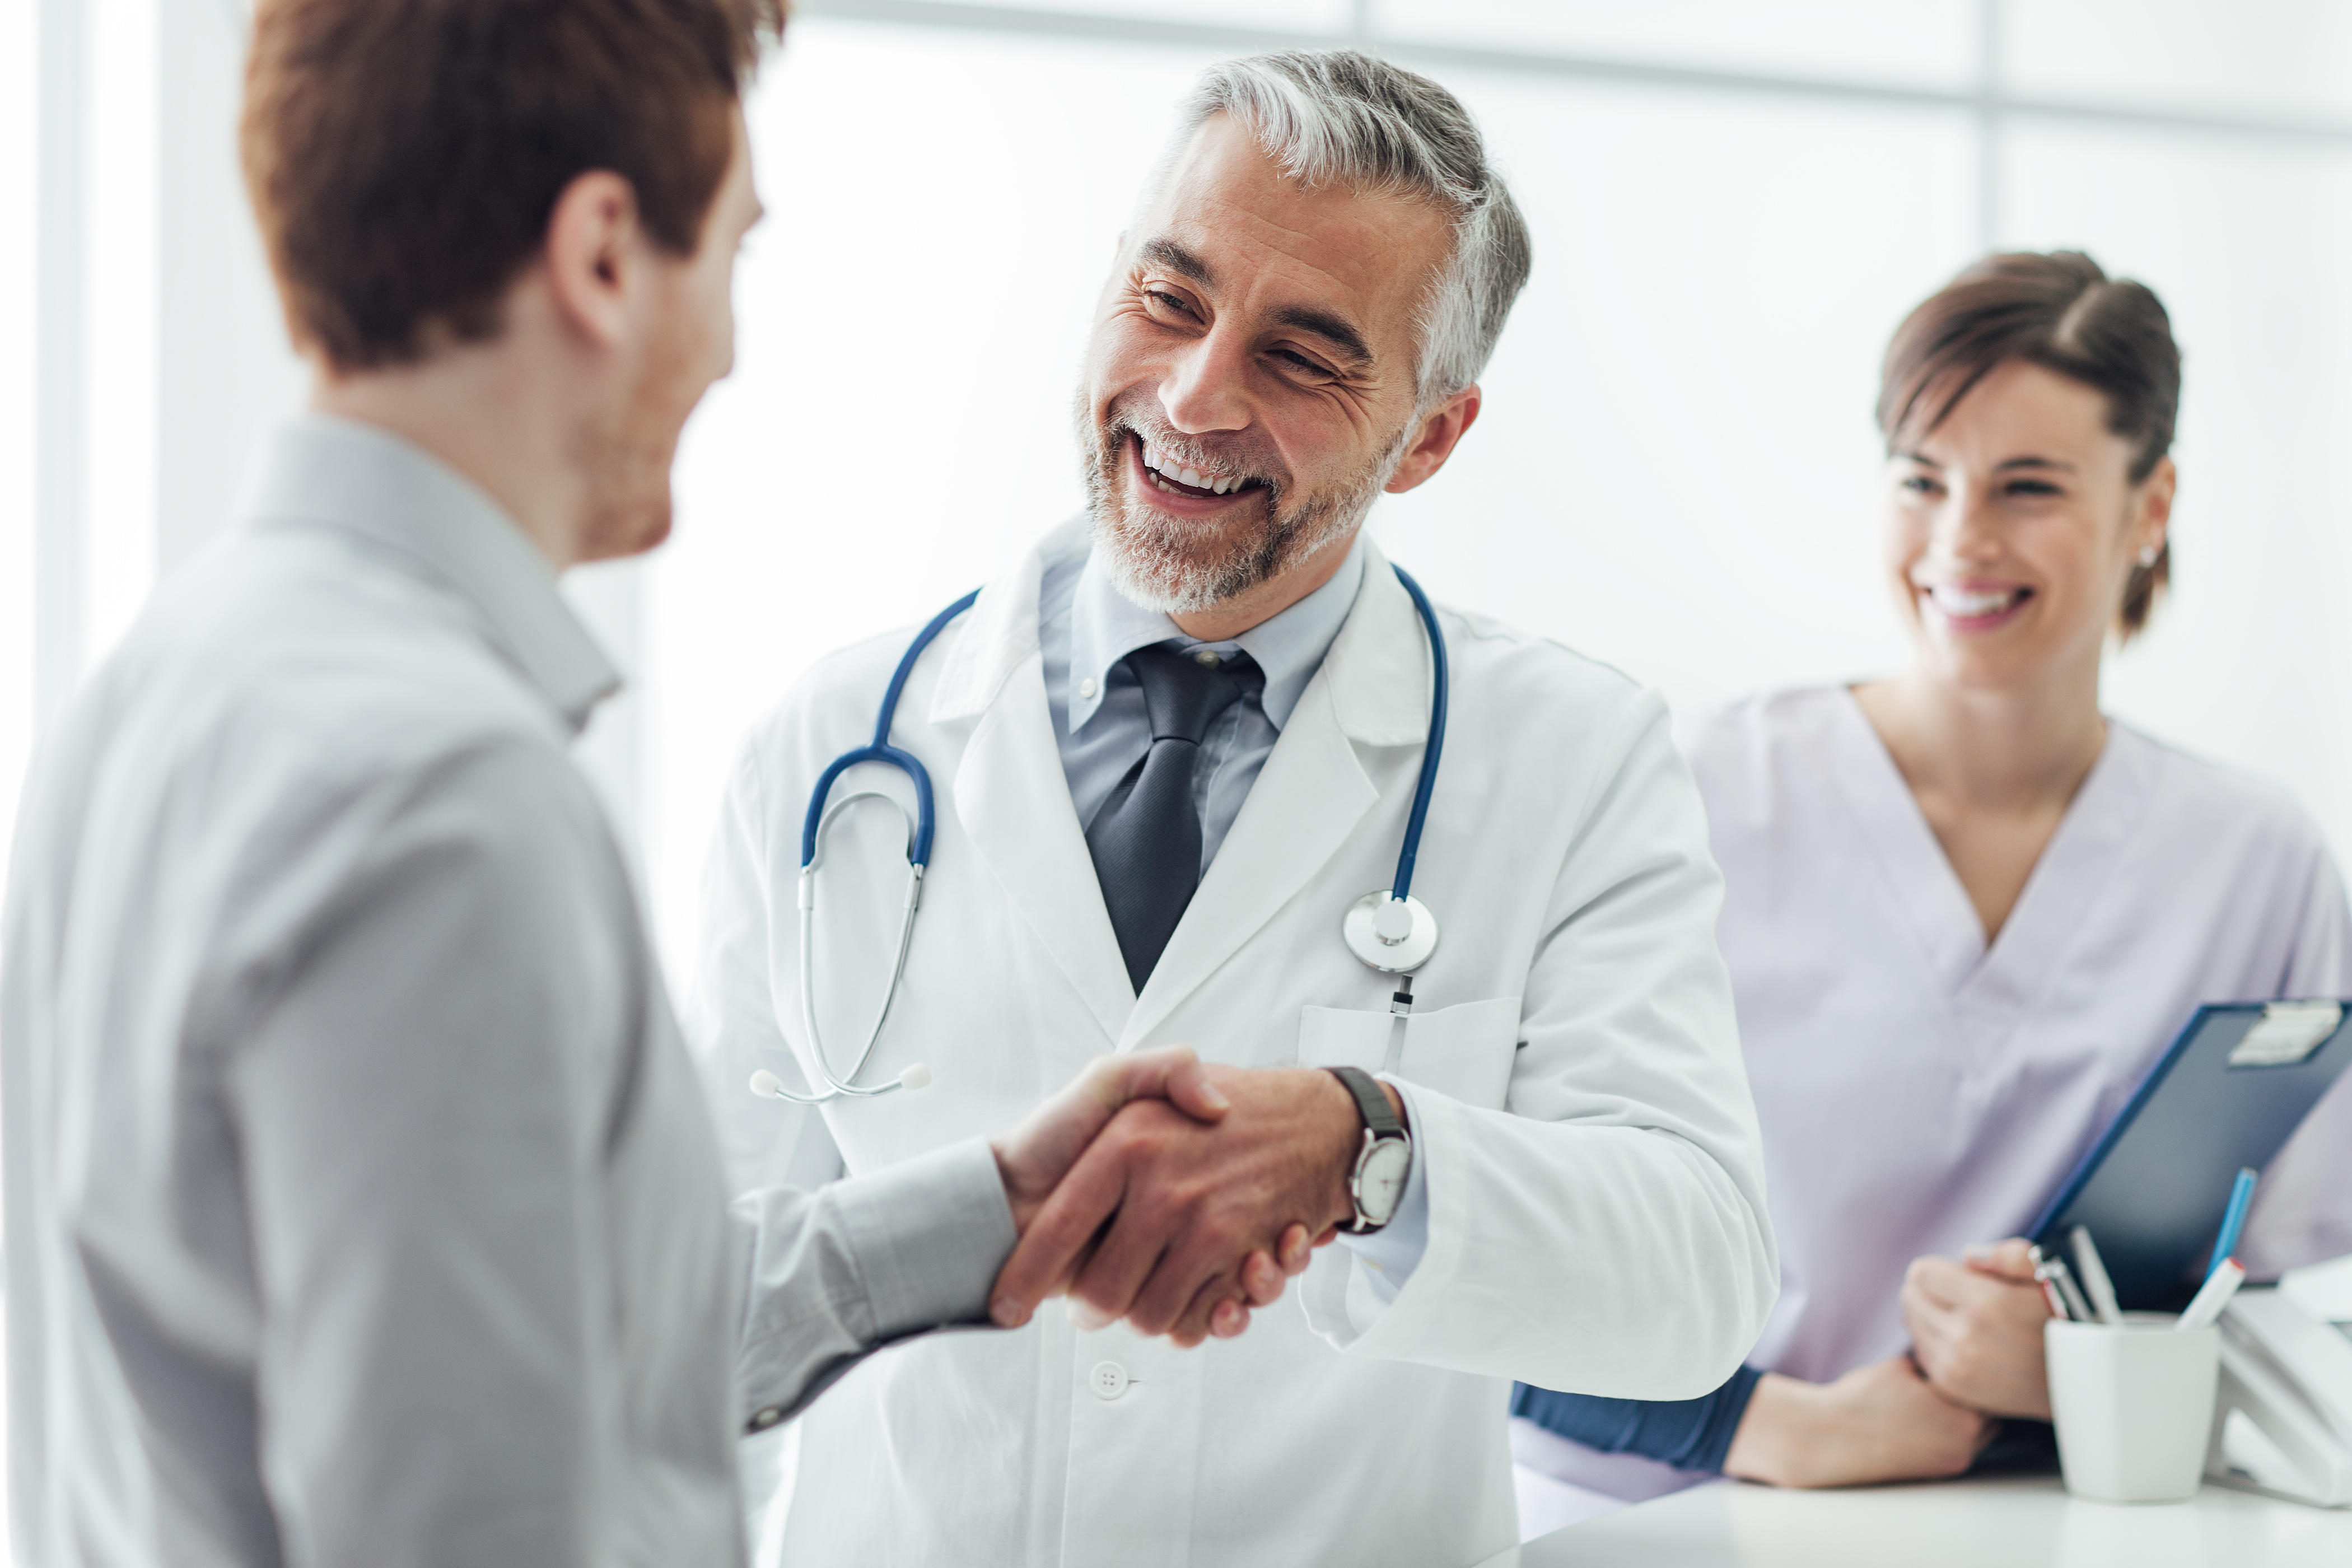 Will a new model of primary care deliver better results? Image